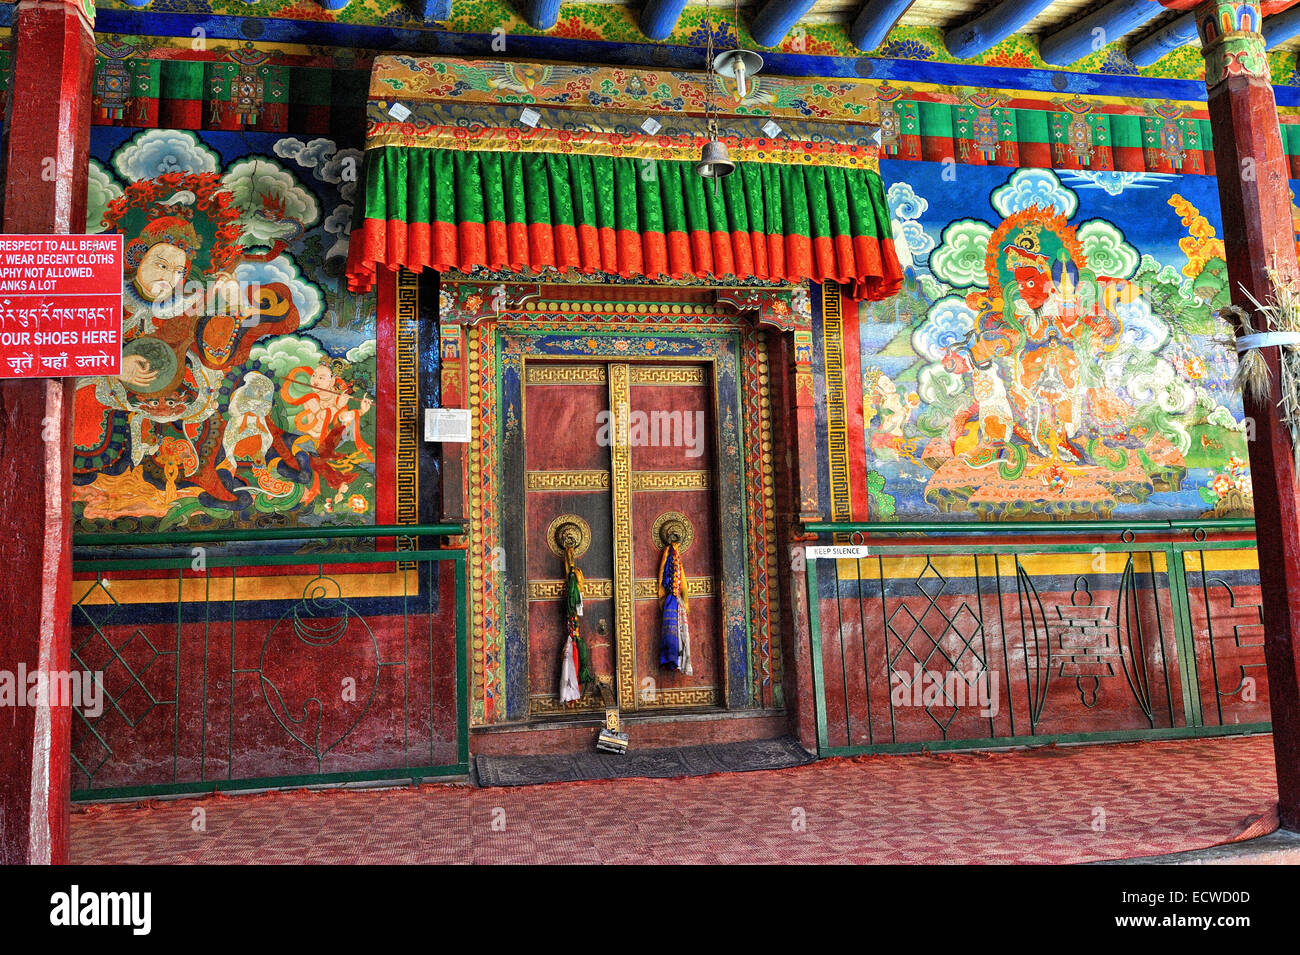 The 500 yrs old paintings adoring the walls of the Lamayuru monastery - Stock Image